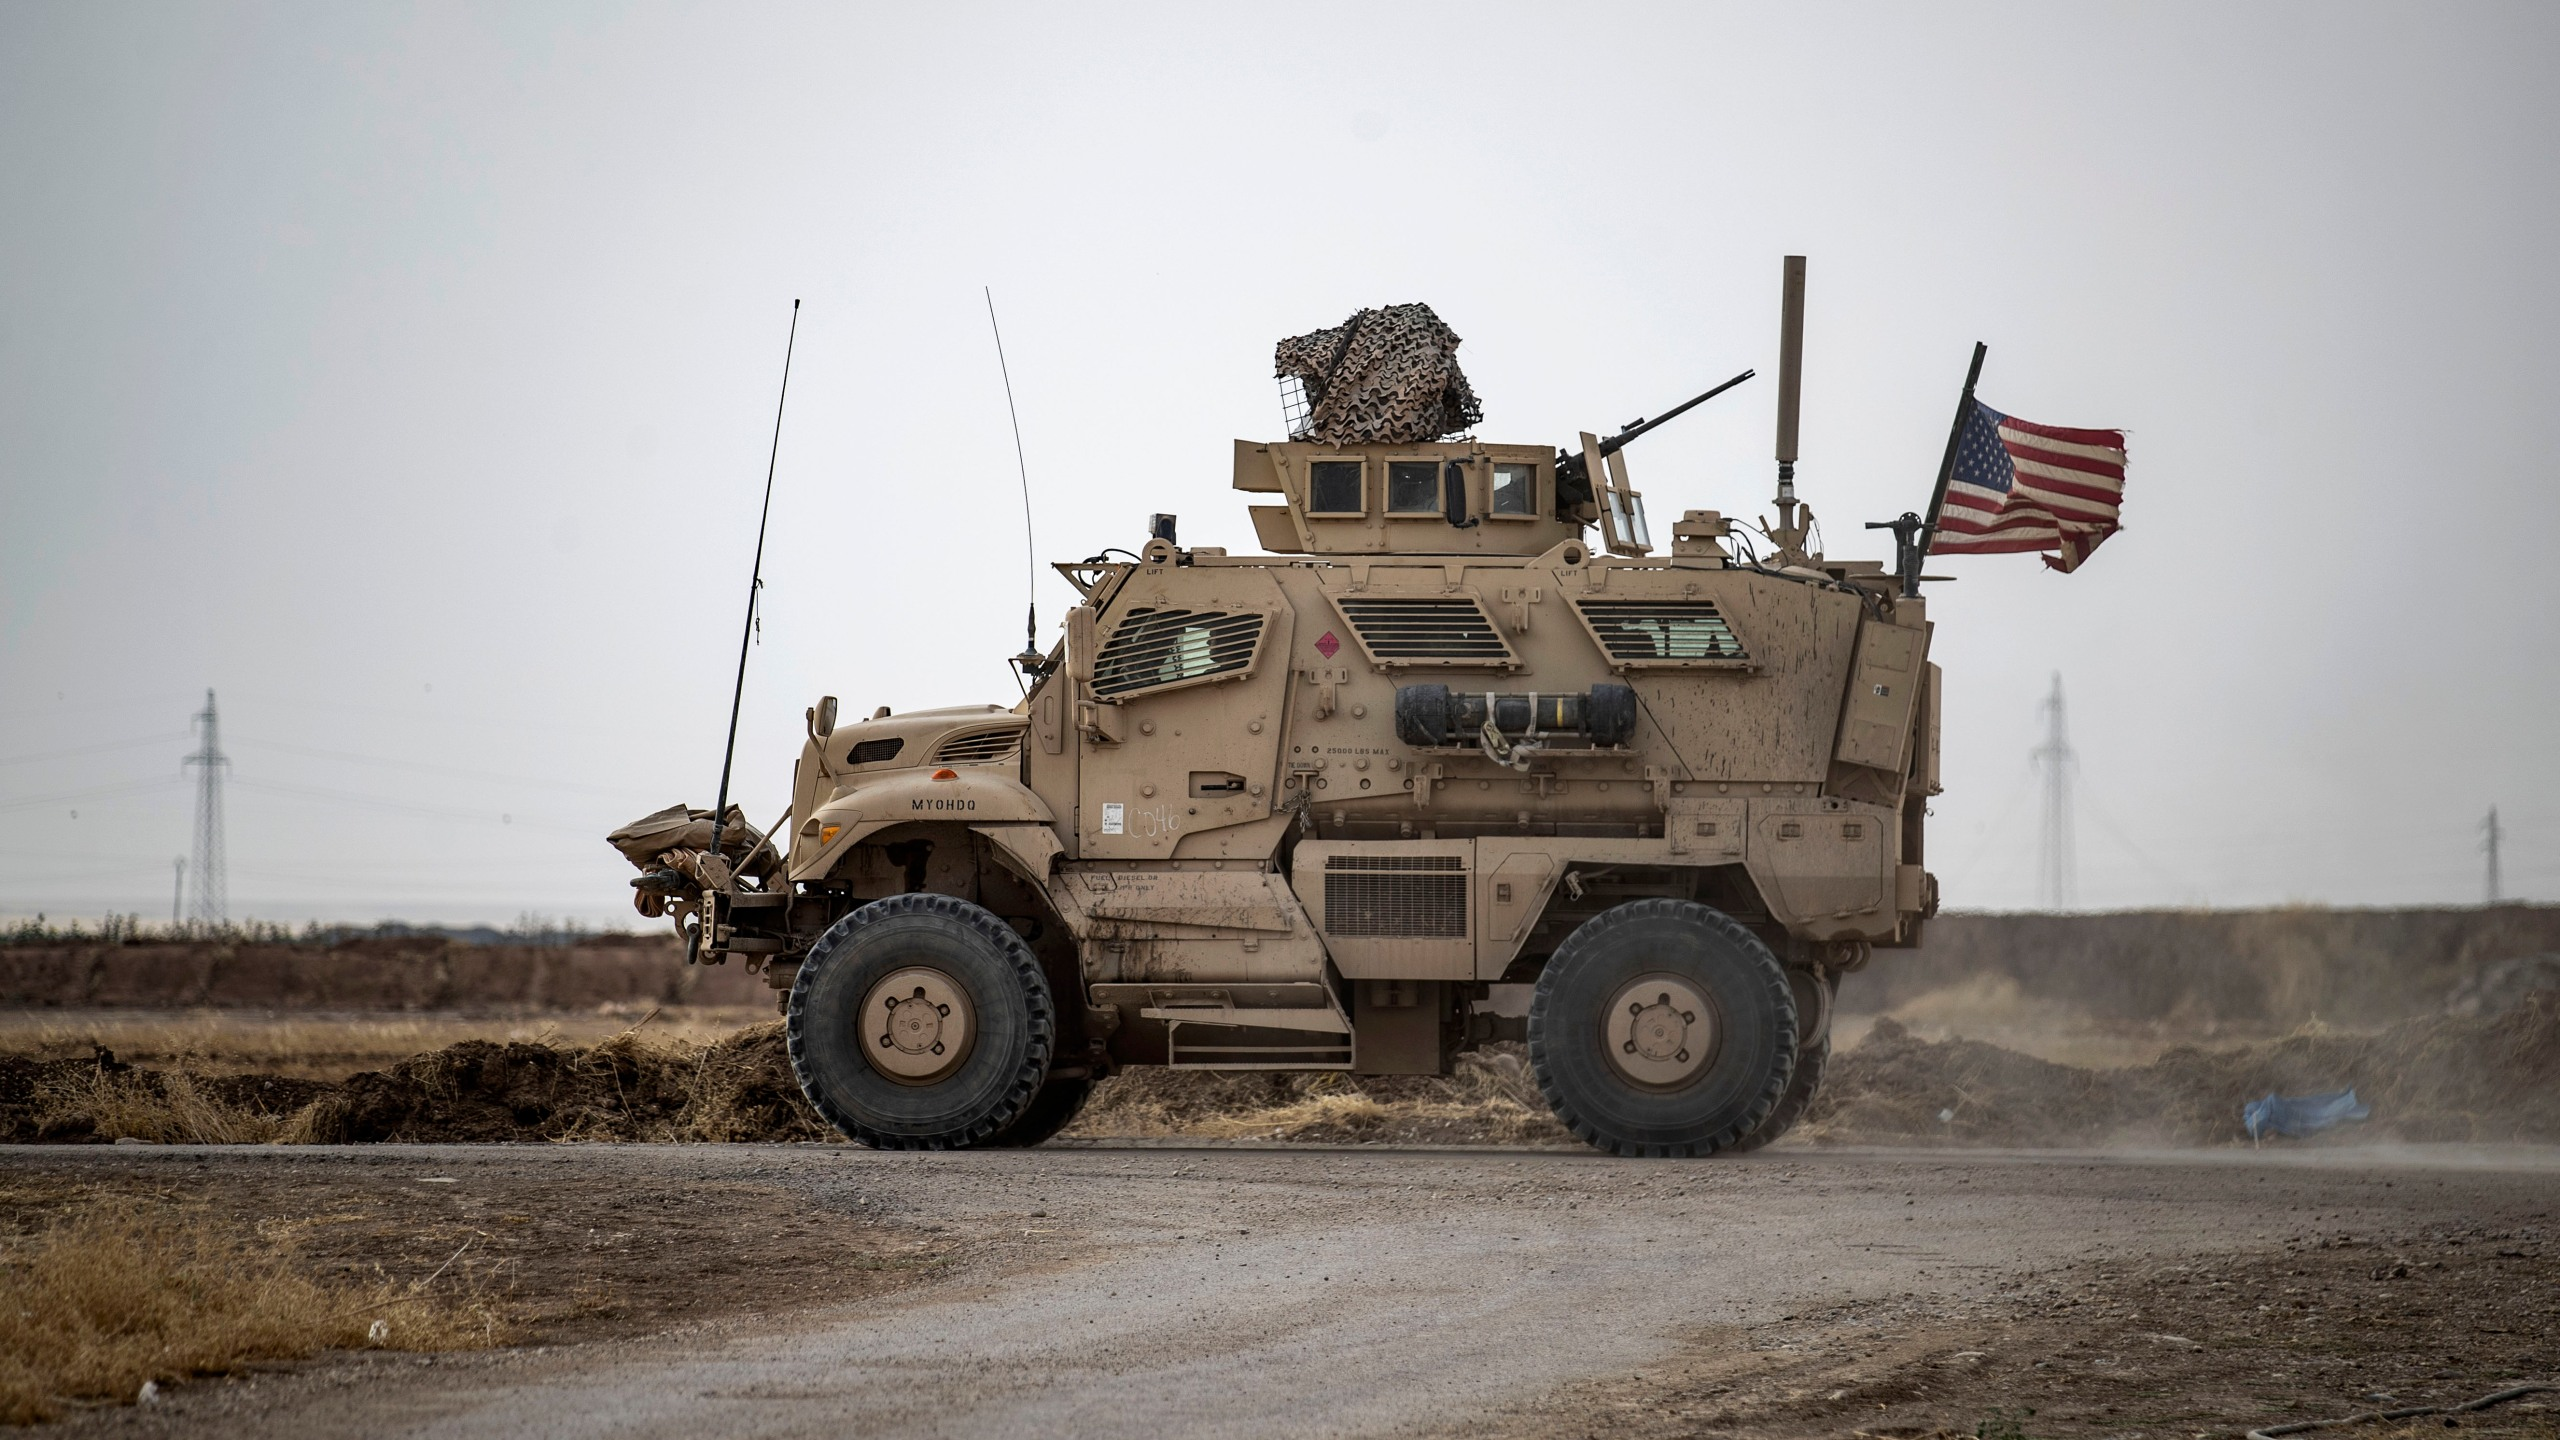 U.S. troops injured after altercation with Russian military convoy in Syria:  Officials | KTLA